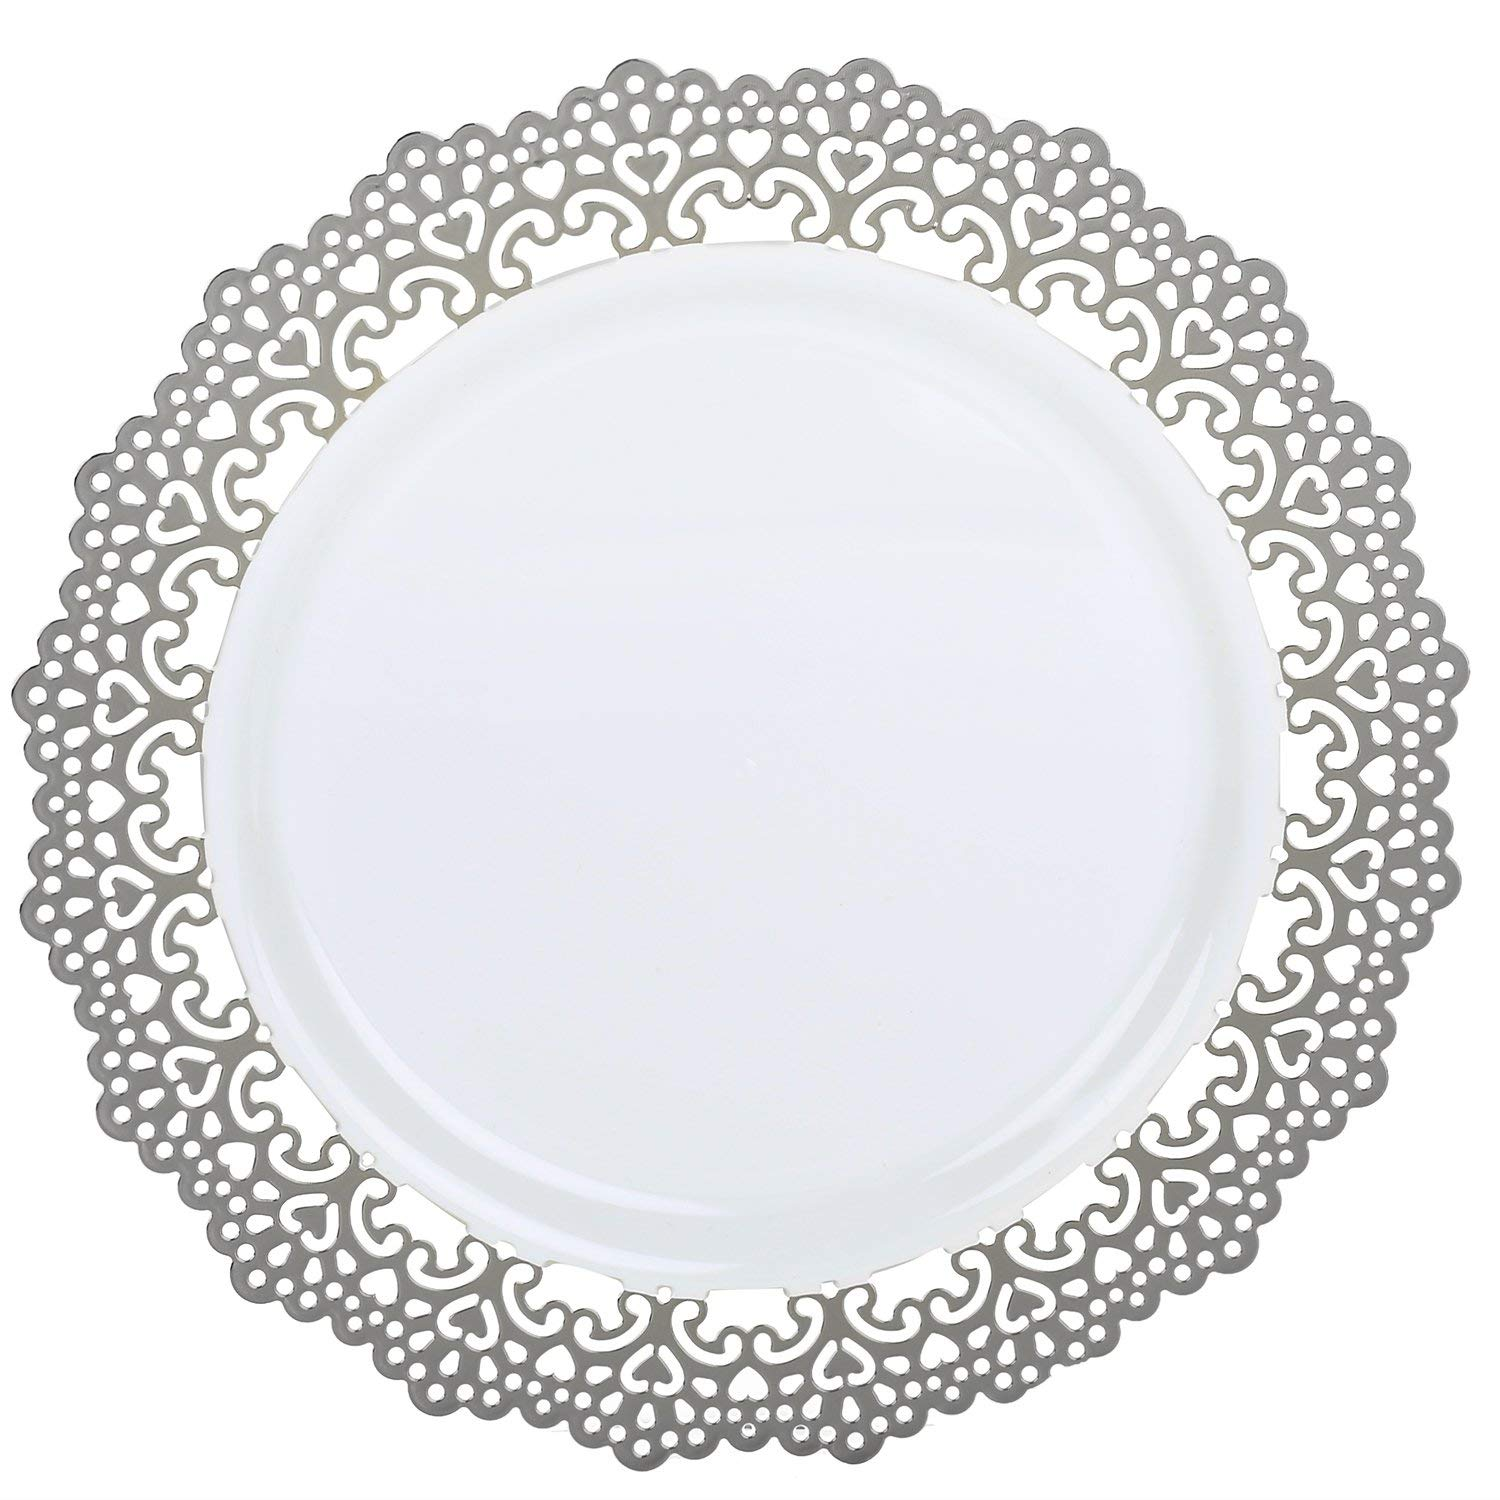 Cheap Plastic Plates Silver Find Plastic Plates Silver Deals On